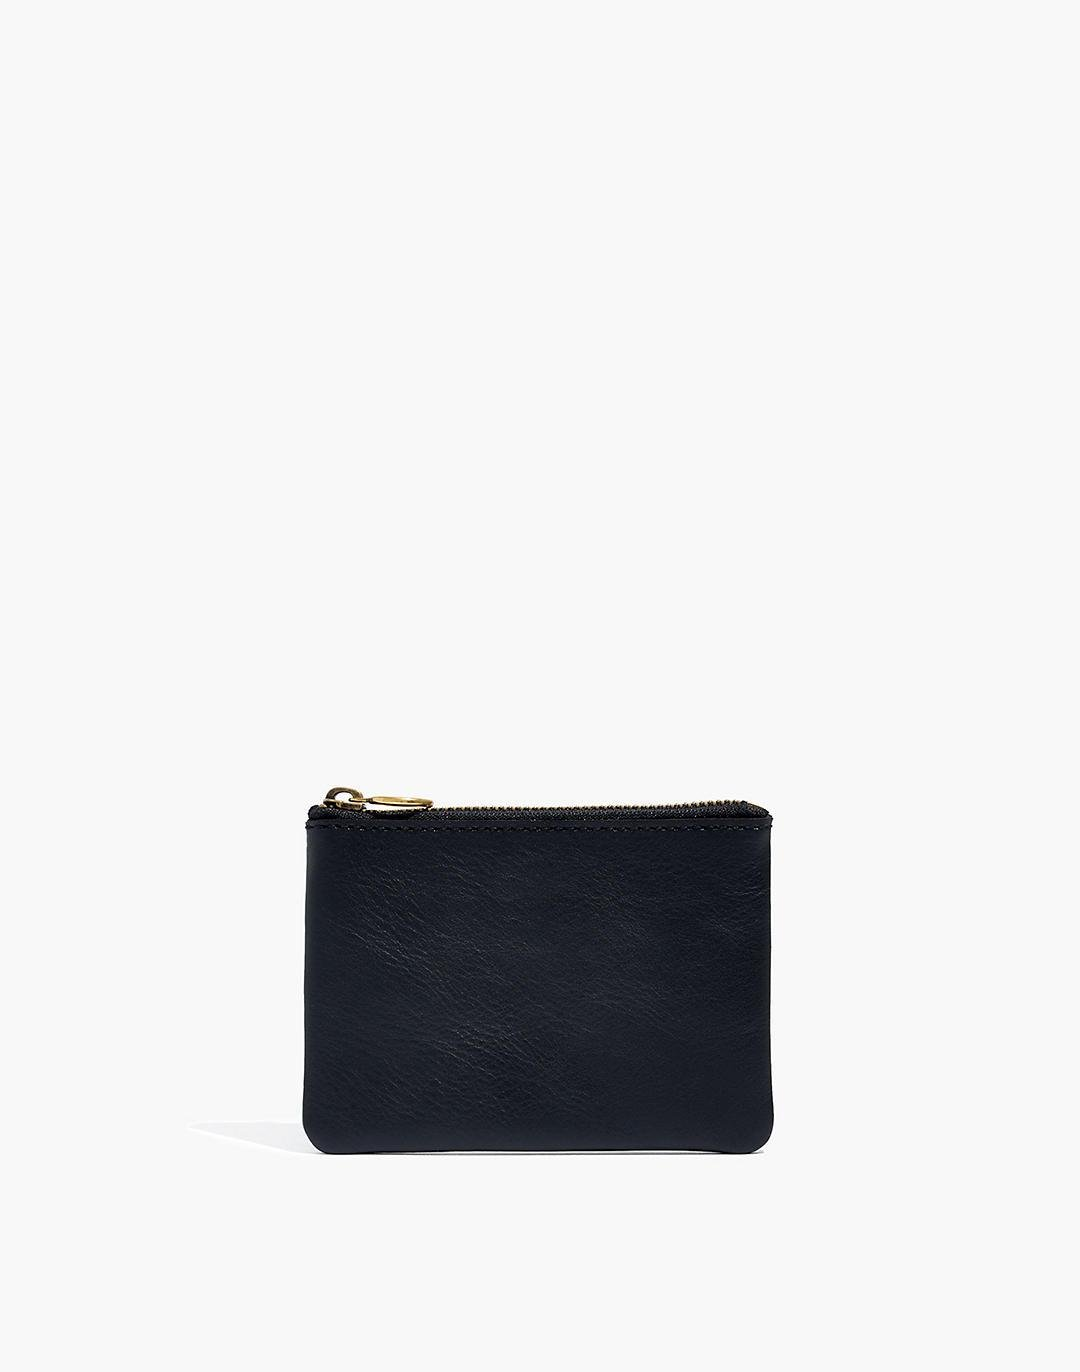 The Leather Pouch Wallet